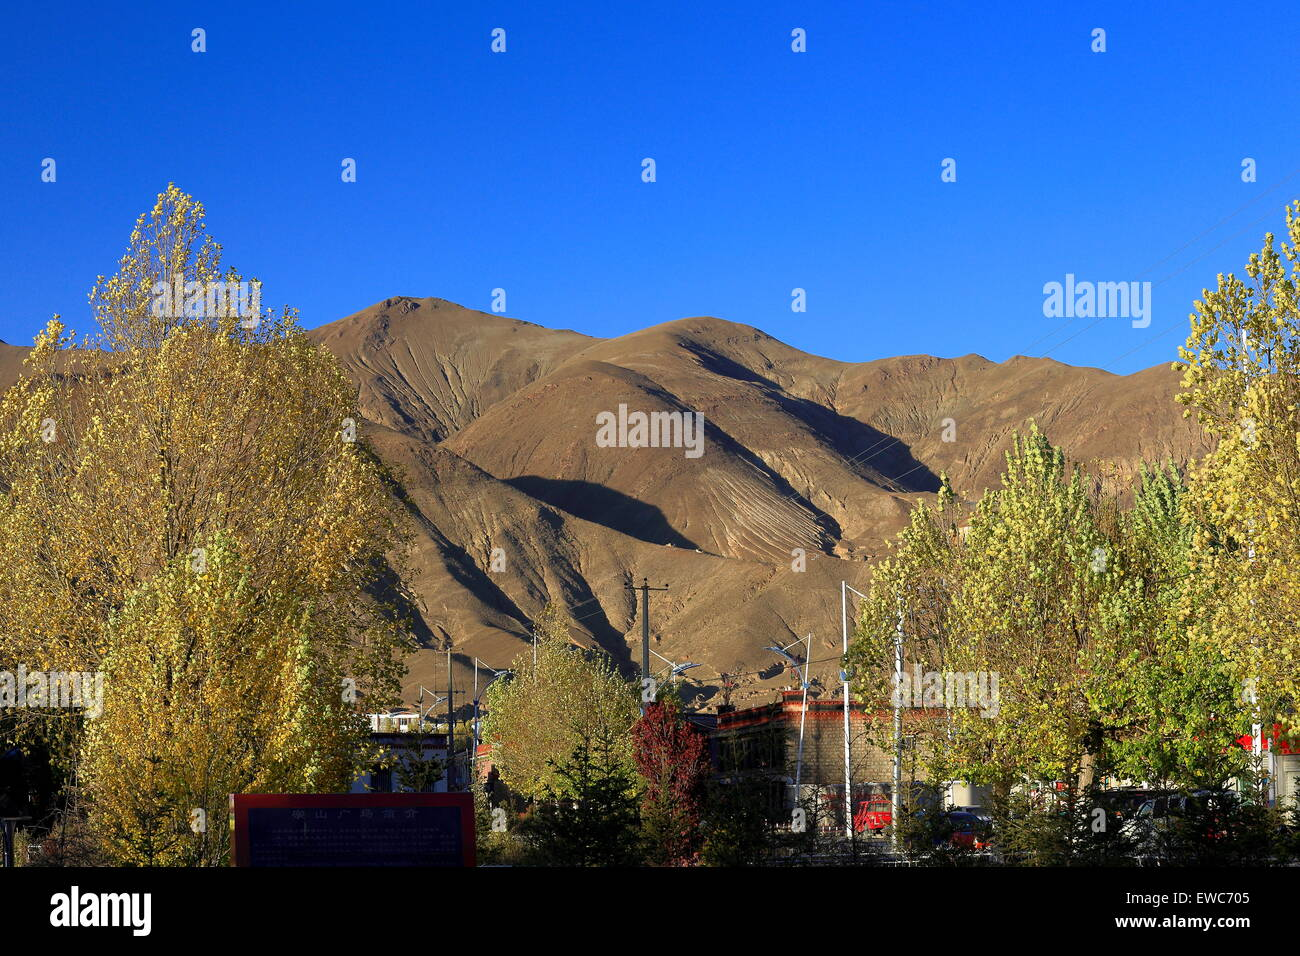 Tall trees in the early autumn and the mountains surrounding the lower town area at 3997 ms. Gyantse city and county - Stock Image